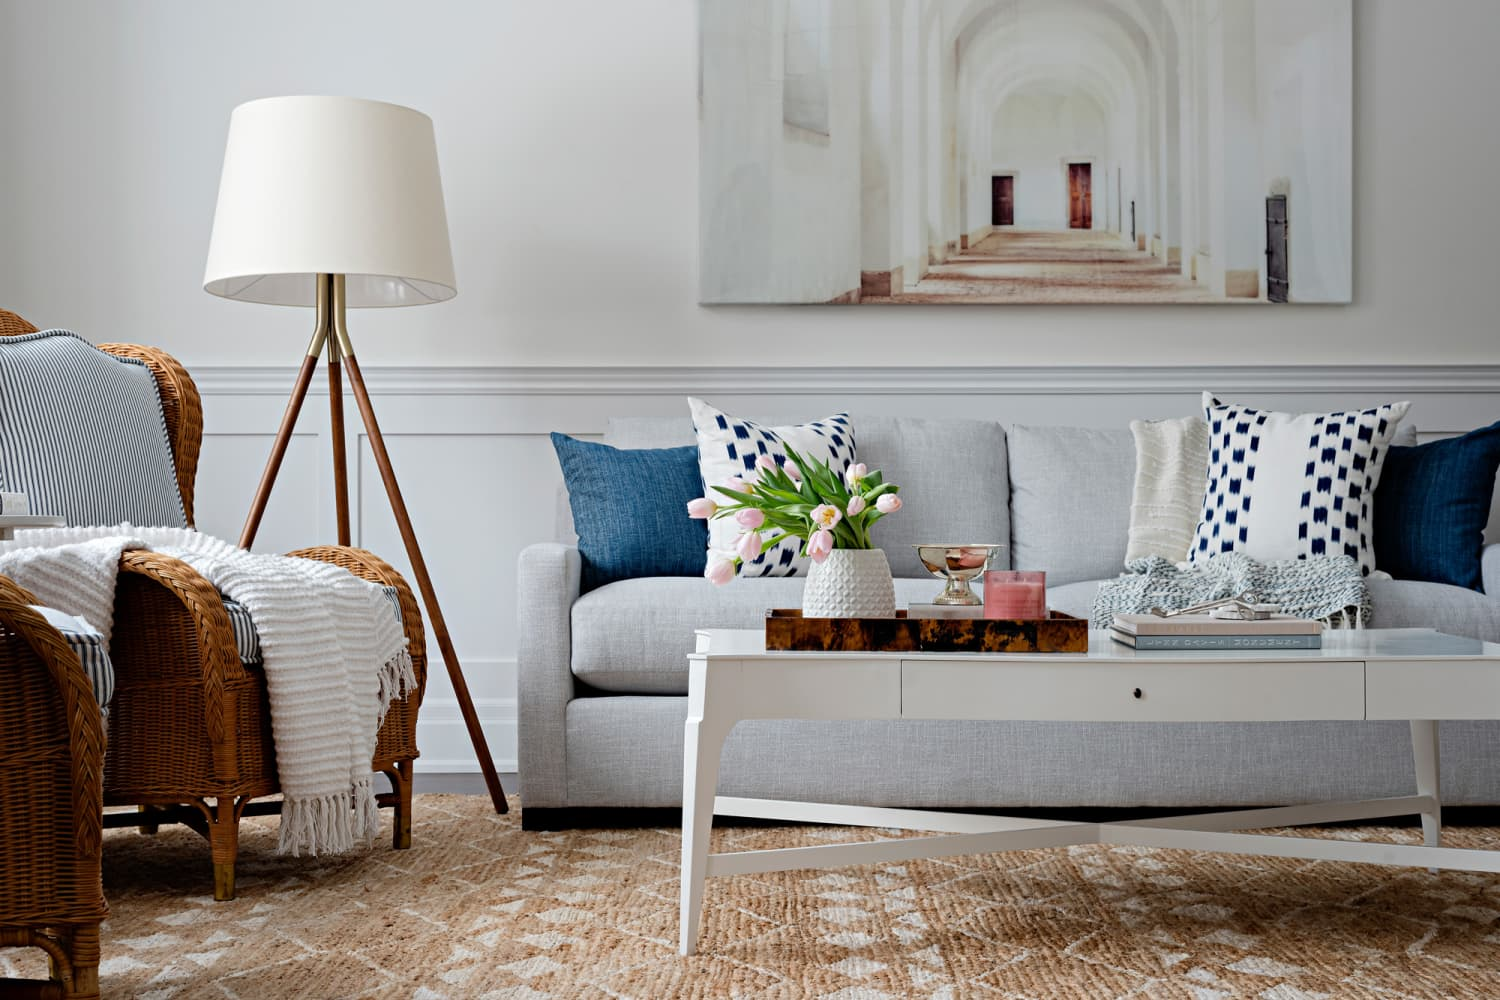 designers-recommend-this-one-easy-high-impact-sustainable-swap-for-your-home